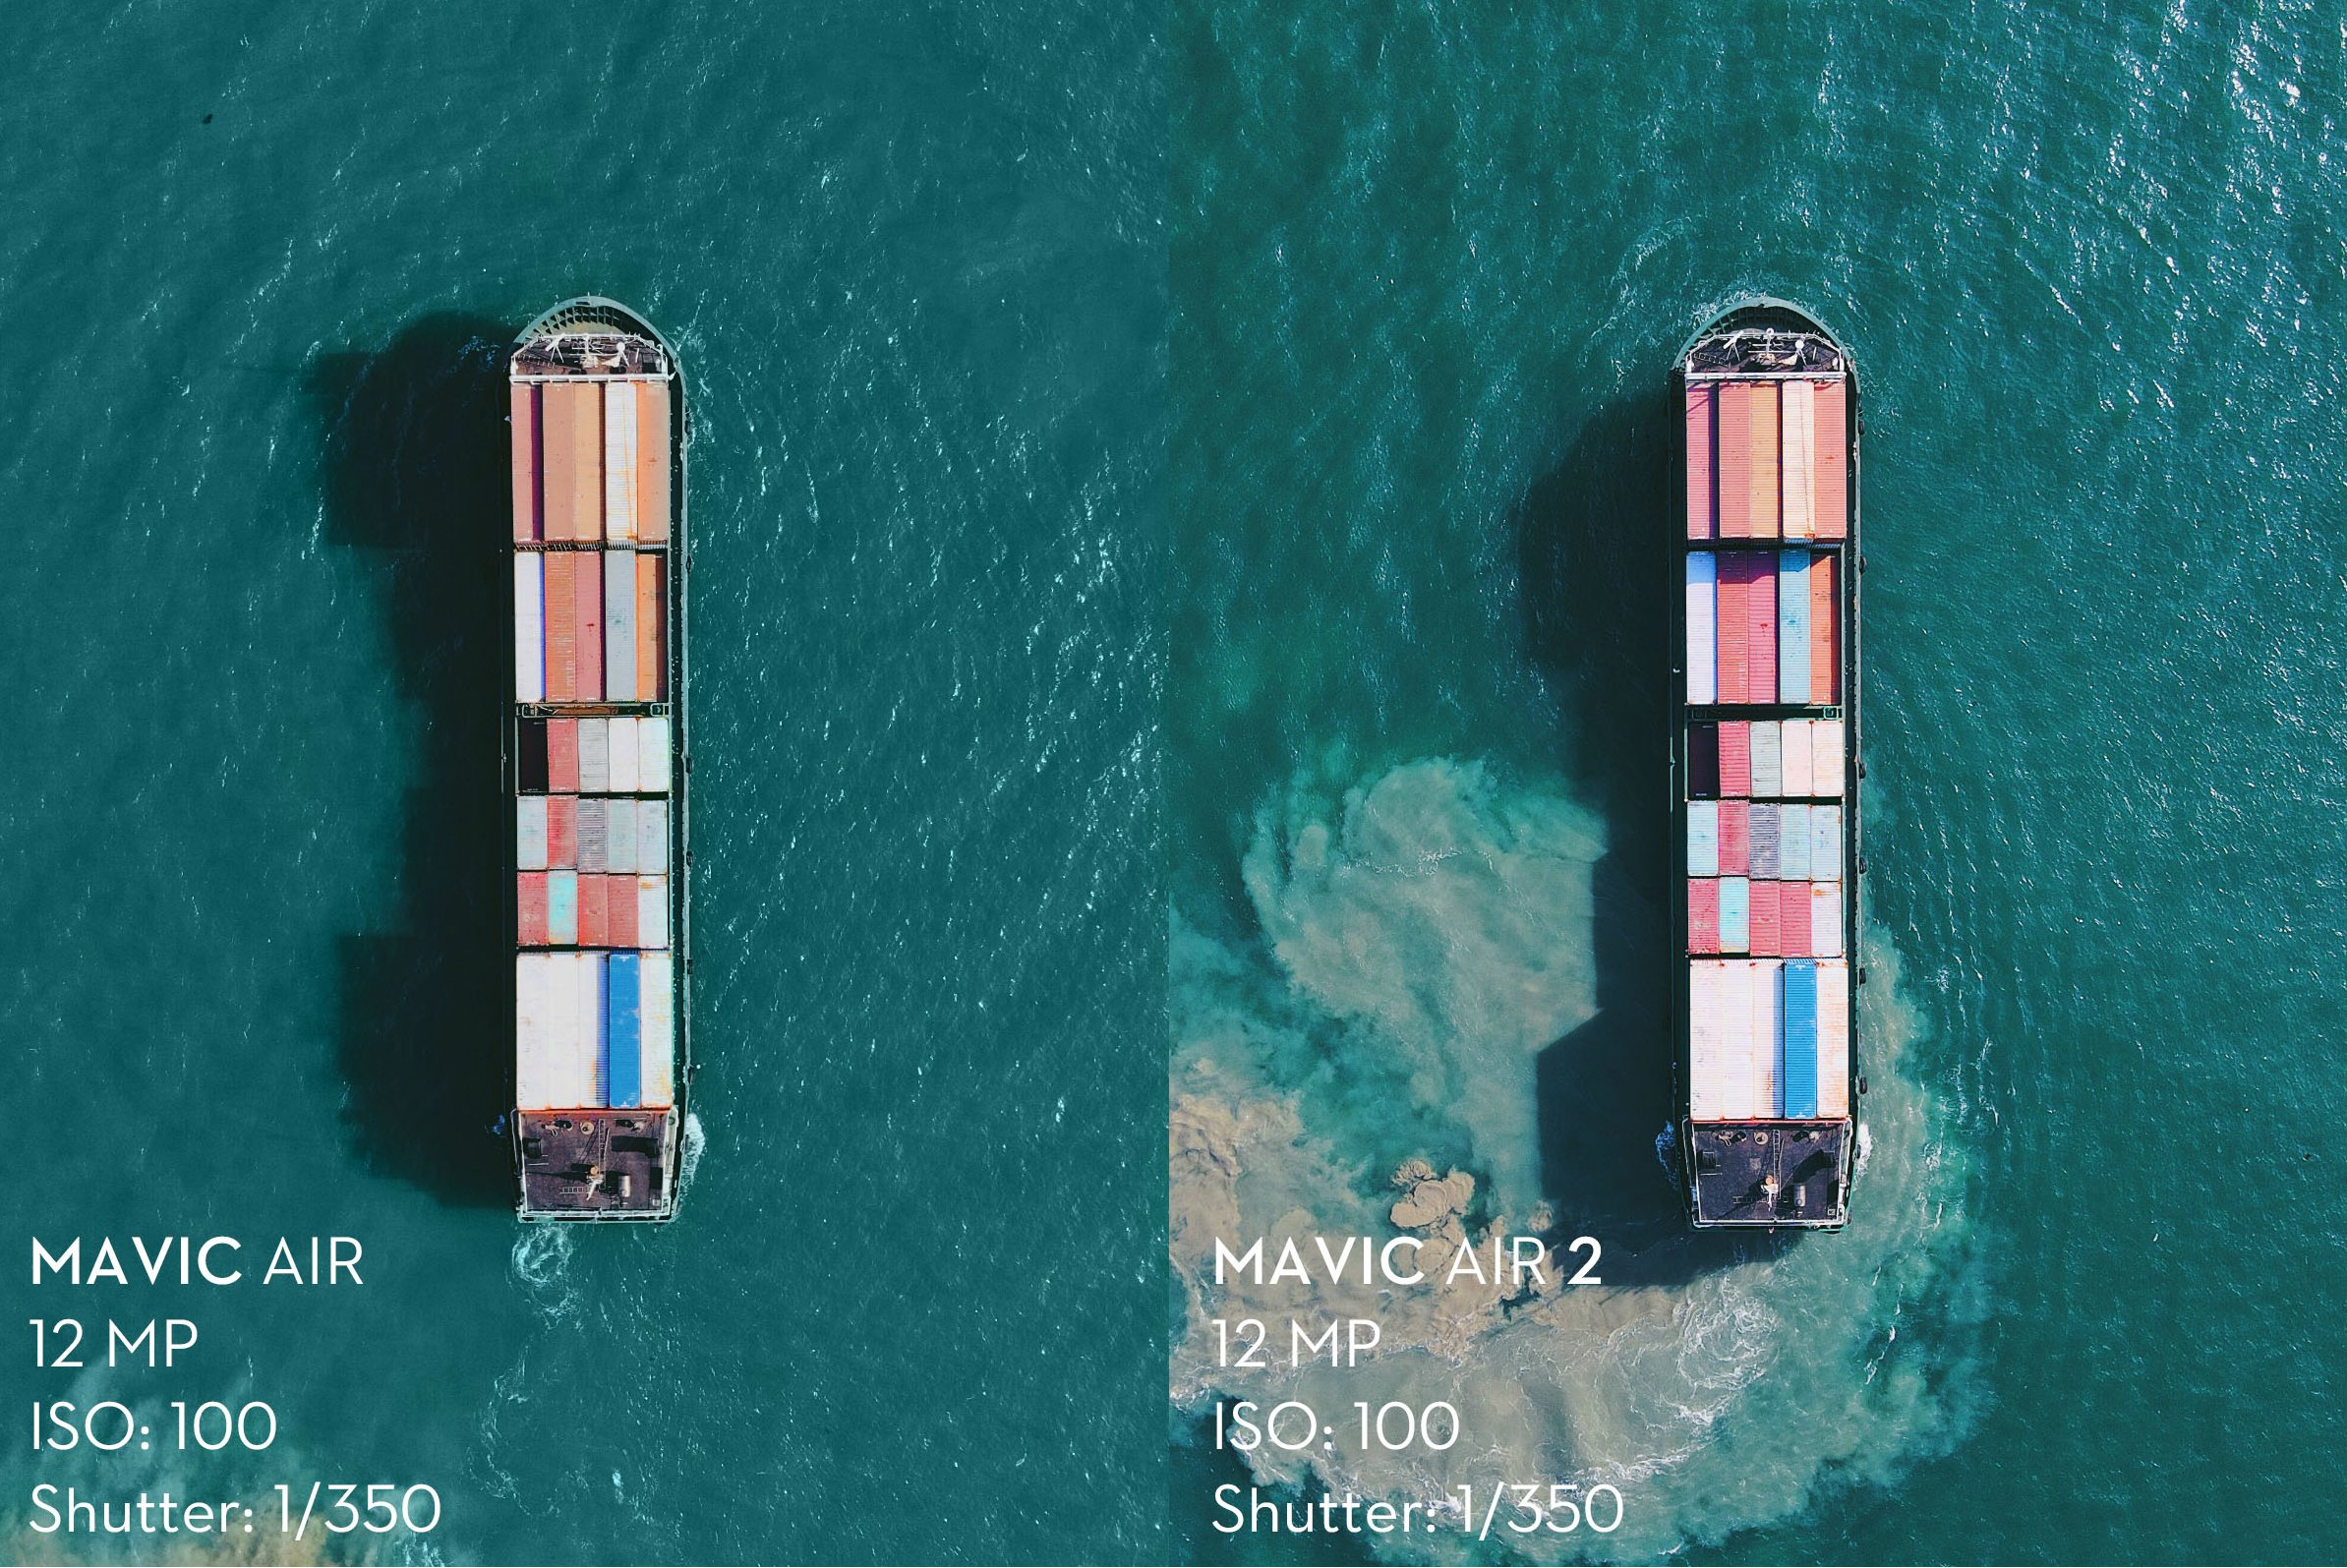 Mavic Air 2 vs Mavic Air Color